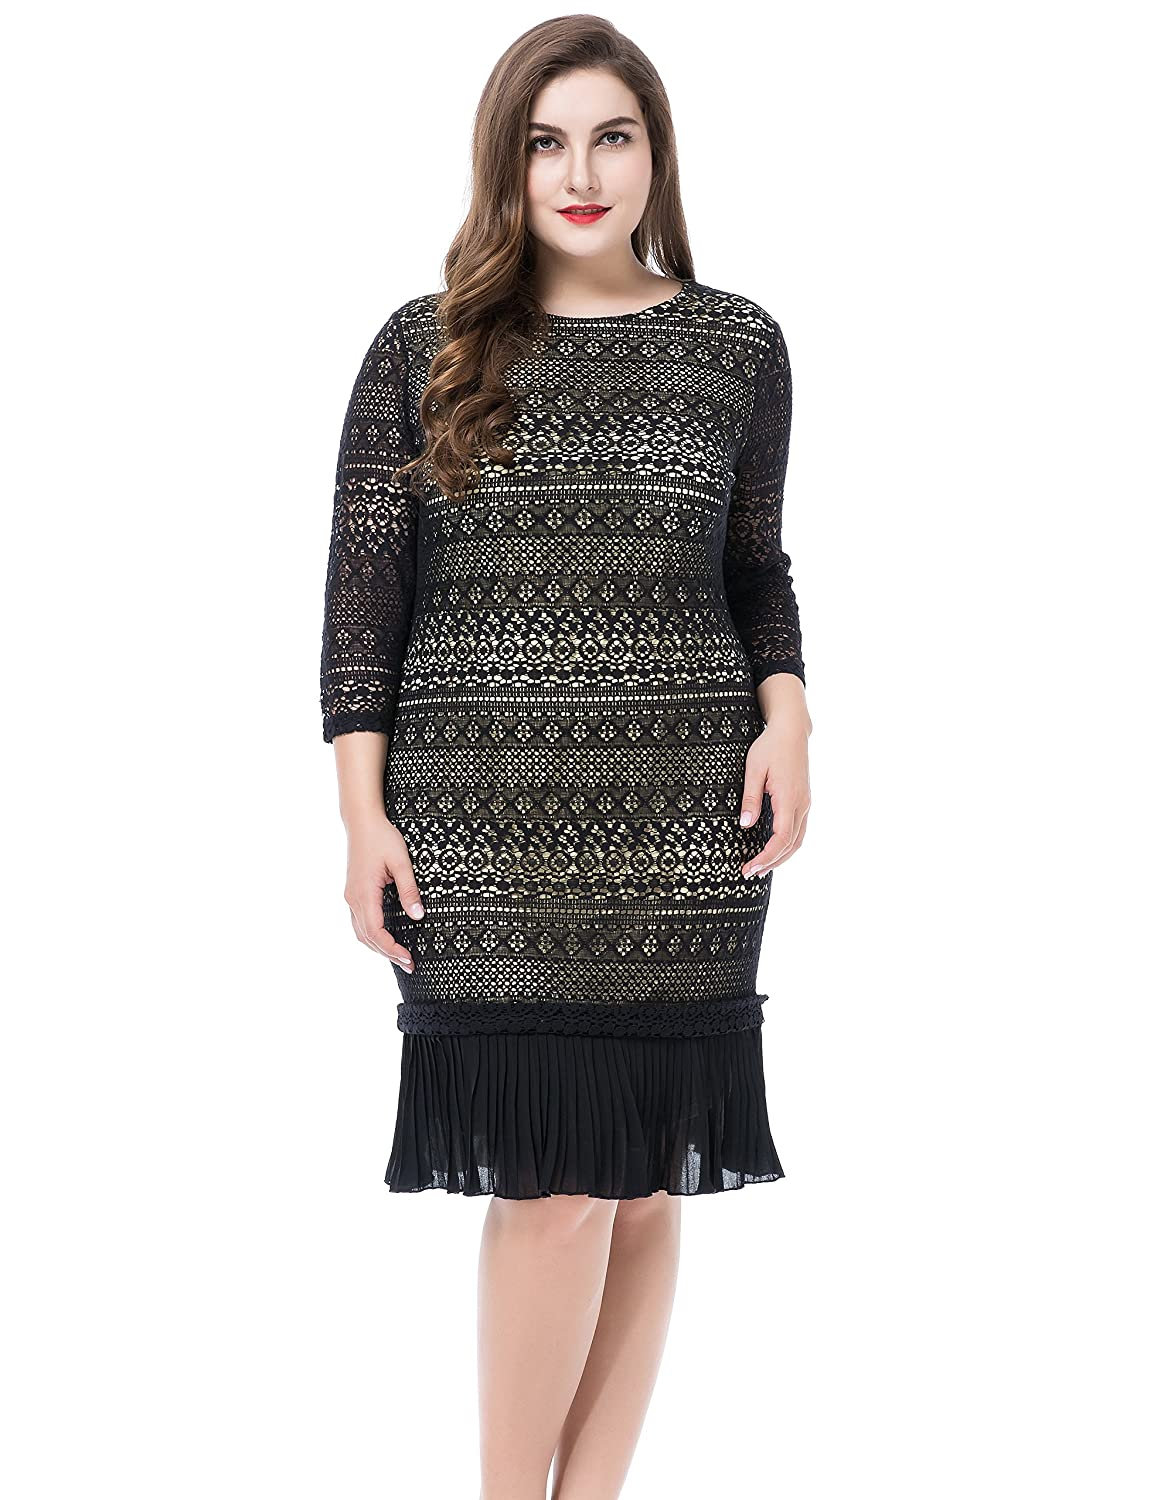 e5afb889a1e Chicwe Women s Plus Size Contrast Lined Lace Dress with Pleated Hem - Knee  Length Work Casual Party Cocktail Dress at Amazon Women s Clothing store